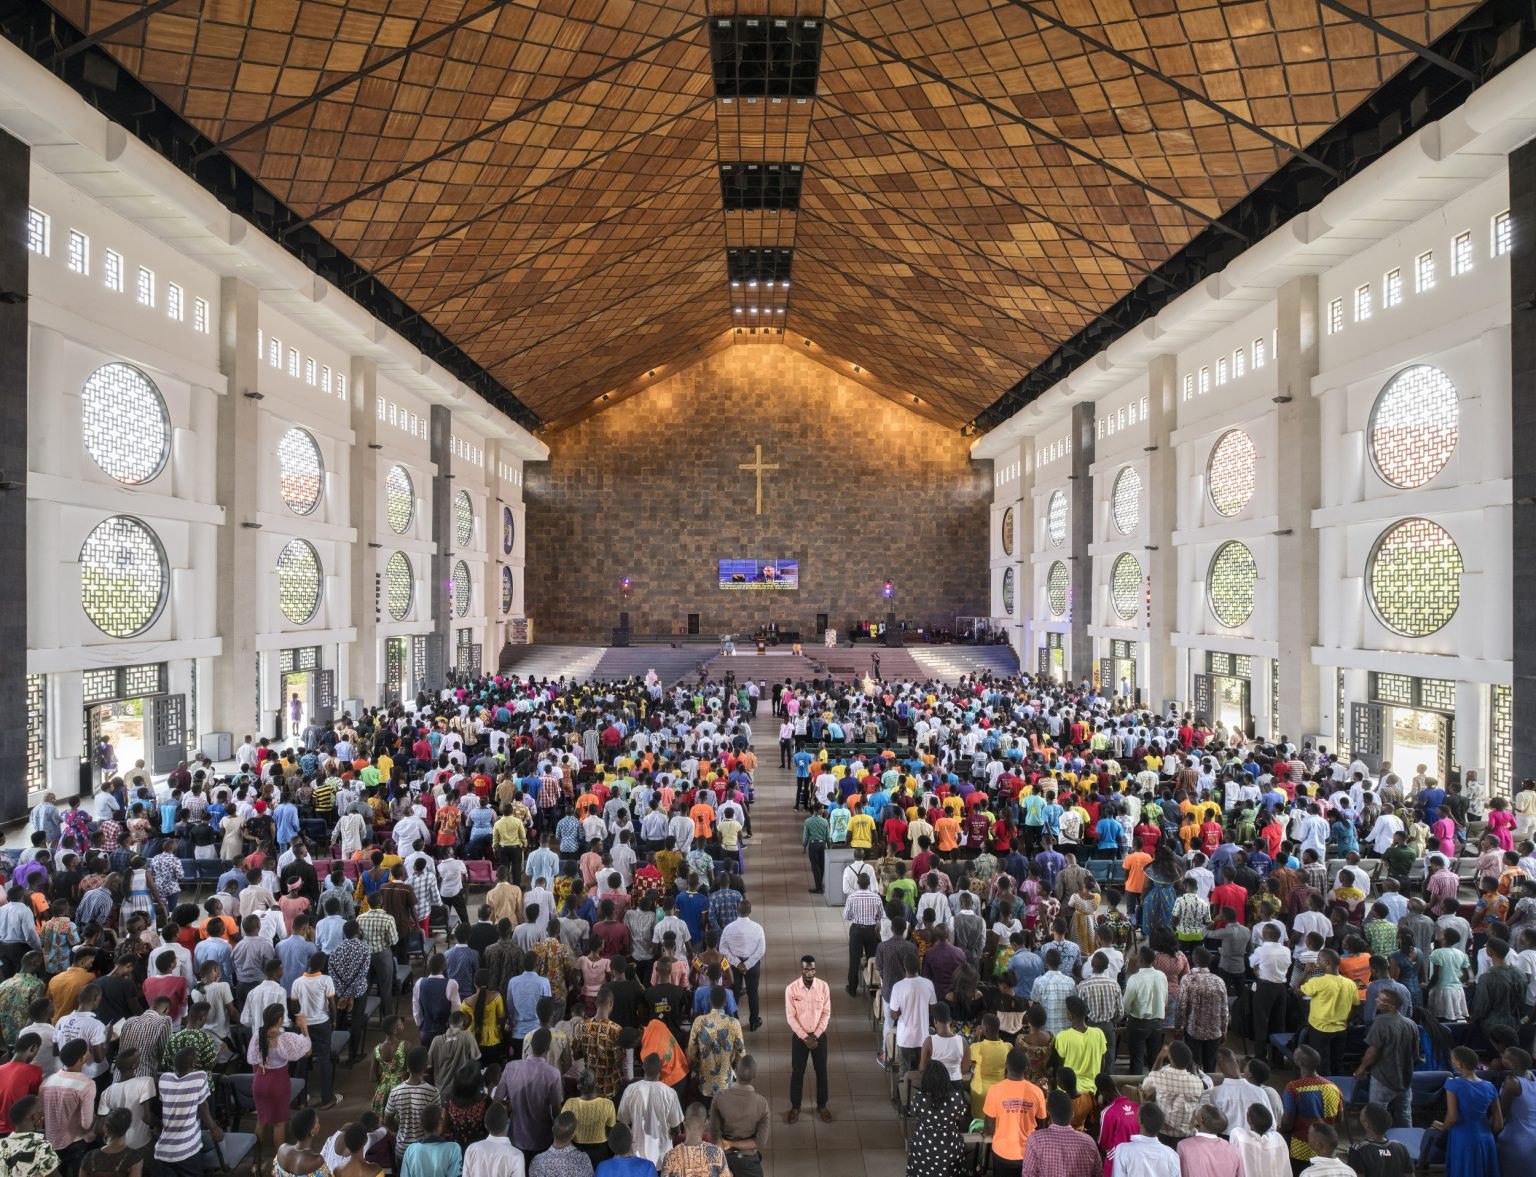 The morning service at The Qodesh, headquarter of Lighthouse Chapel International  located in North Kaneshie suburb. The Qodesh is one of the largest megachurches. Accra, Republic of Ghana, 2019